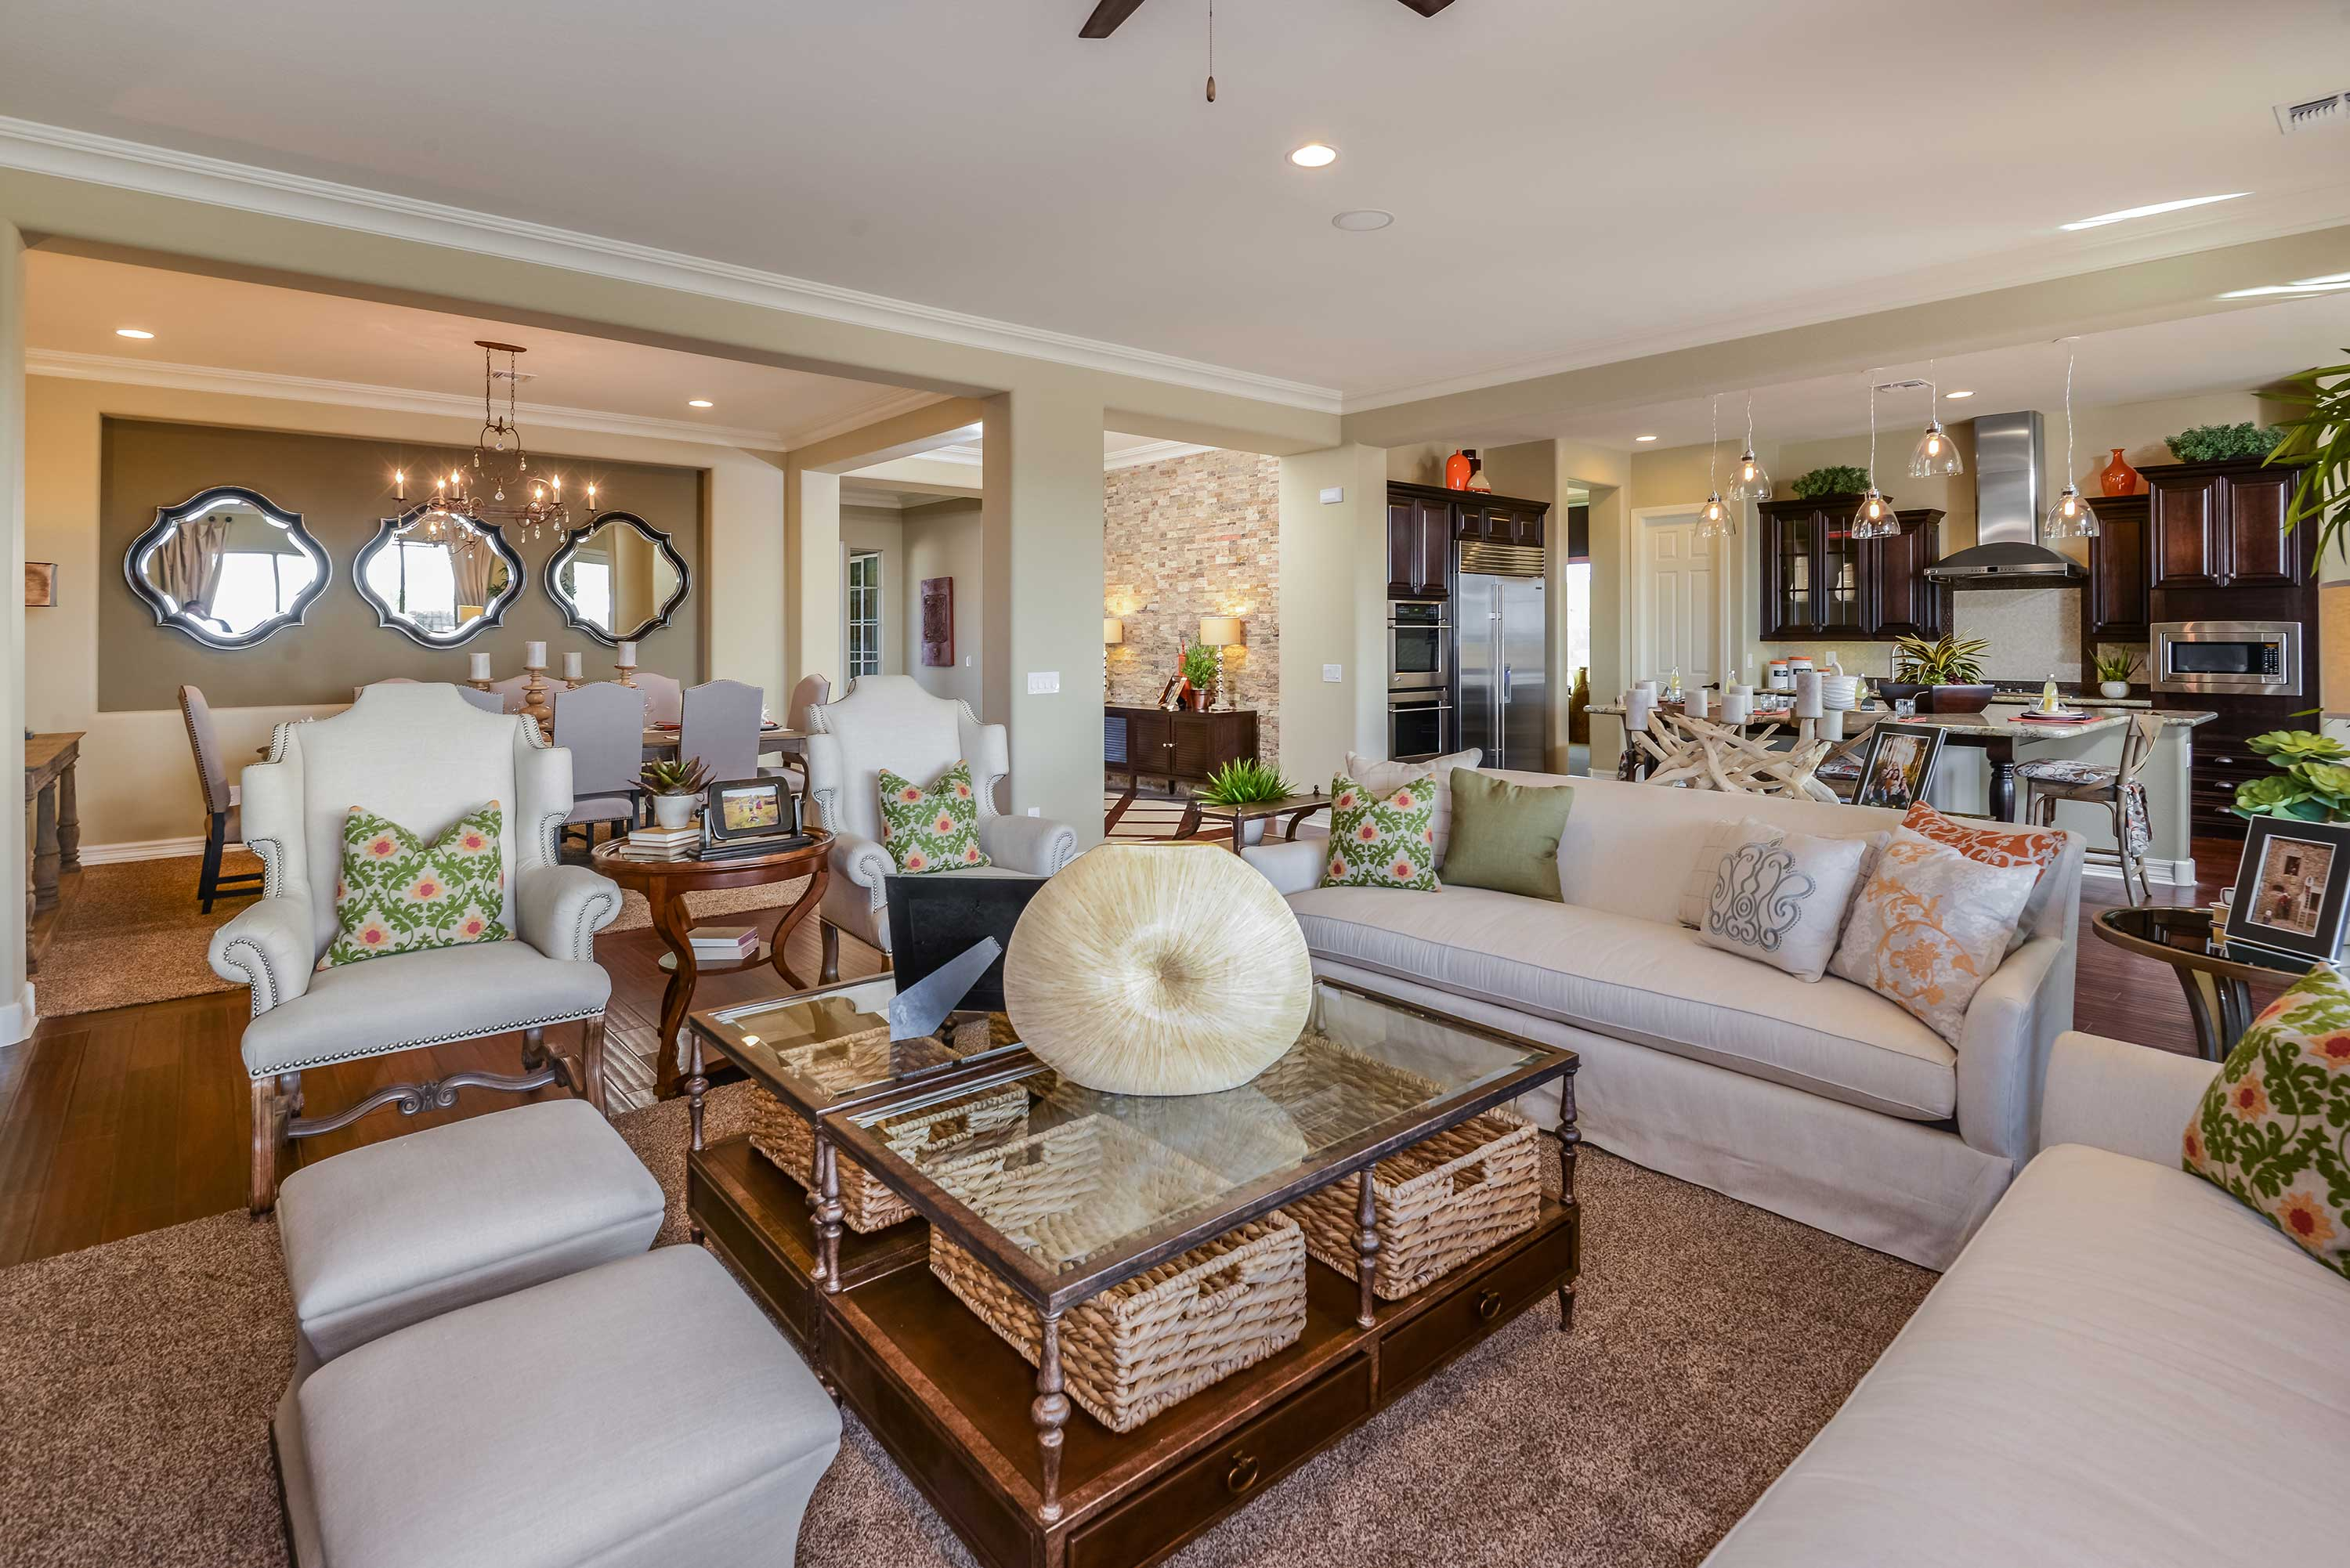 taylor morrison debuts three new collections of homes at the community set against the picturesque backdrop of lake pleasant regional park and the calderwood buttes will offer a series of floor plans in the